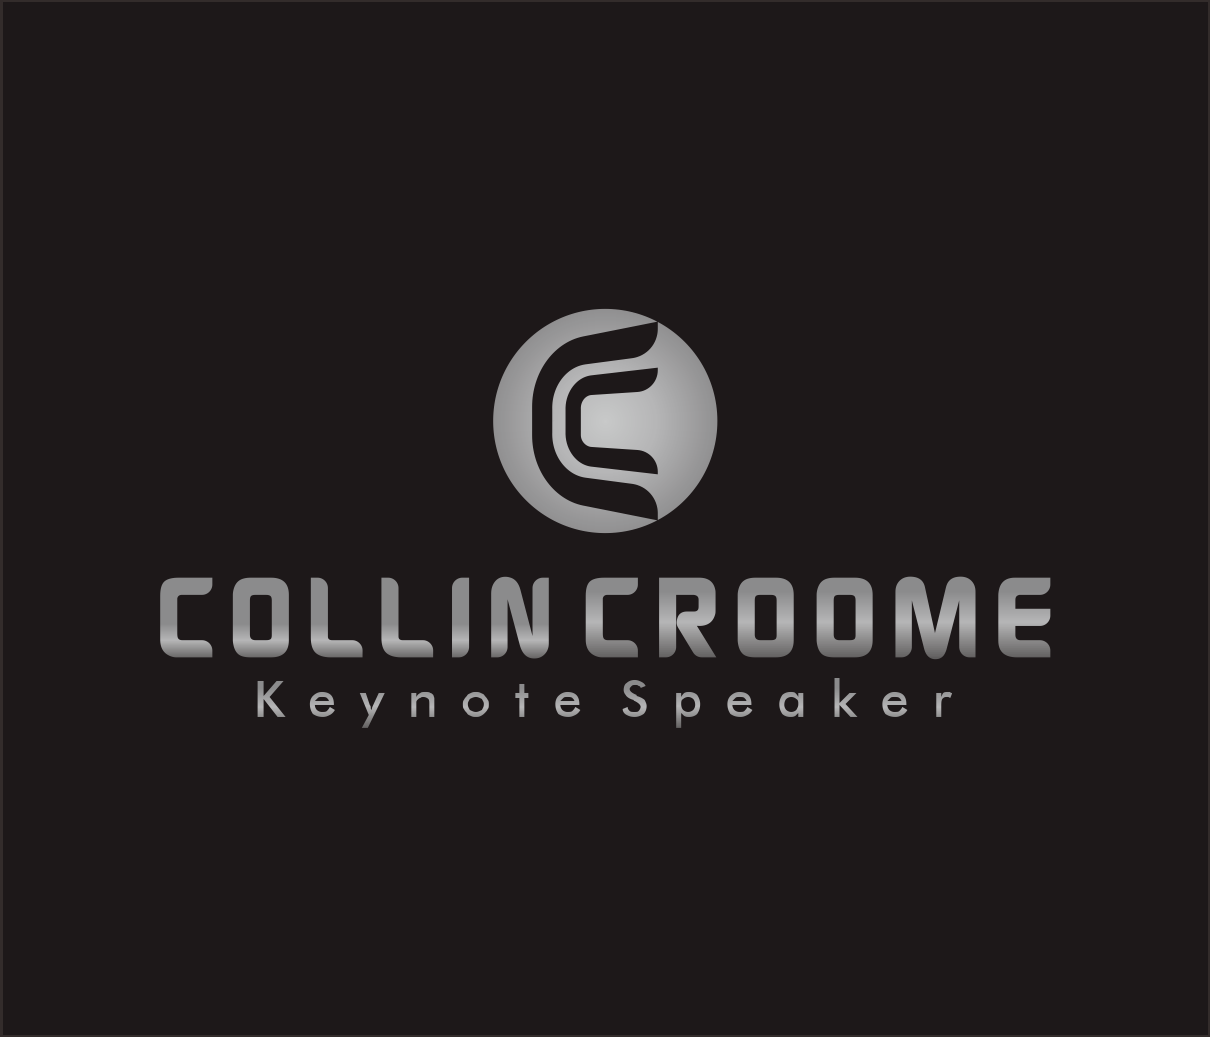 Logo Design by Armada Jamaluddin - Entry No. 166 in the Logo Design Contest Modern Logo Design for Collin Croome.